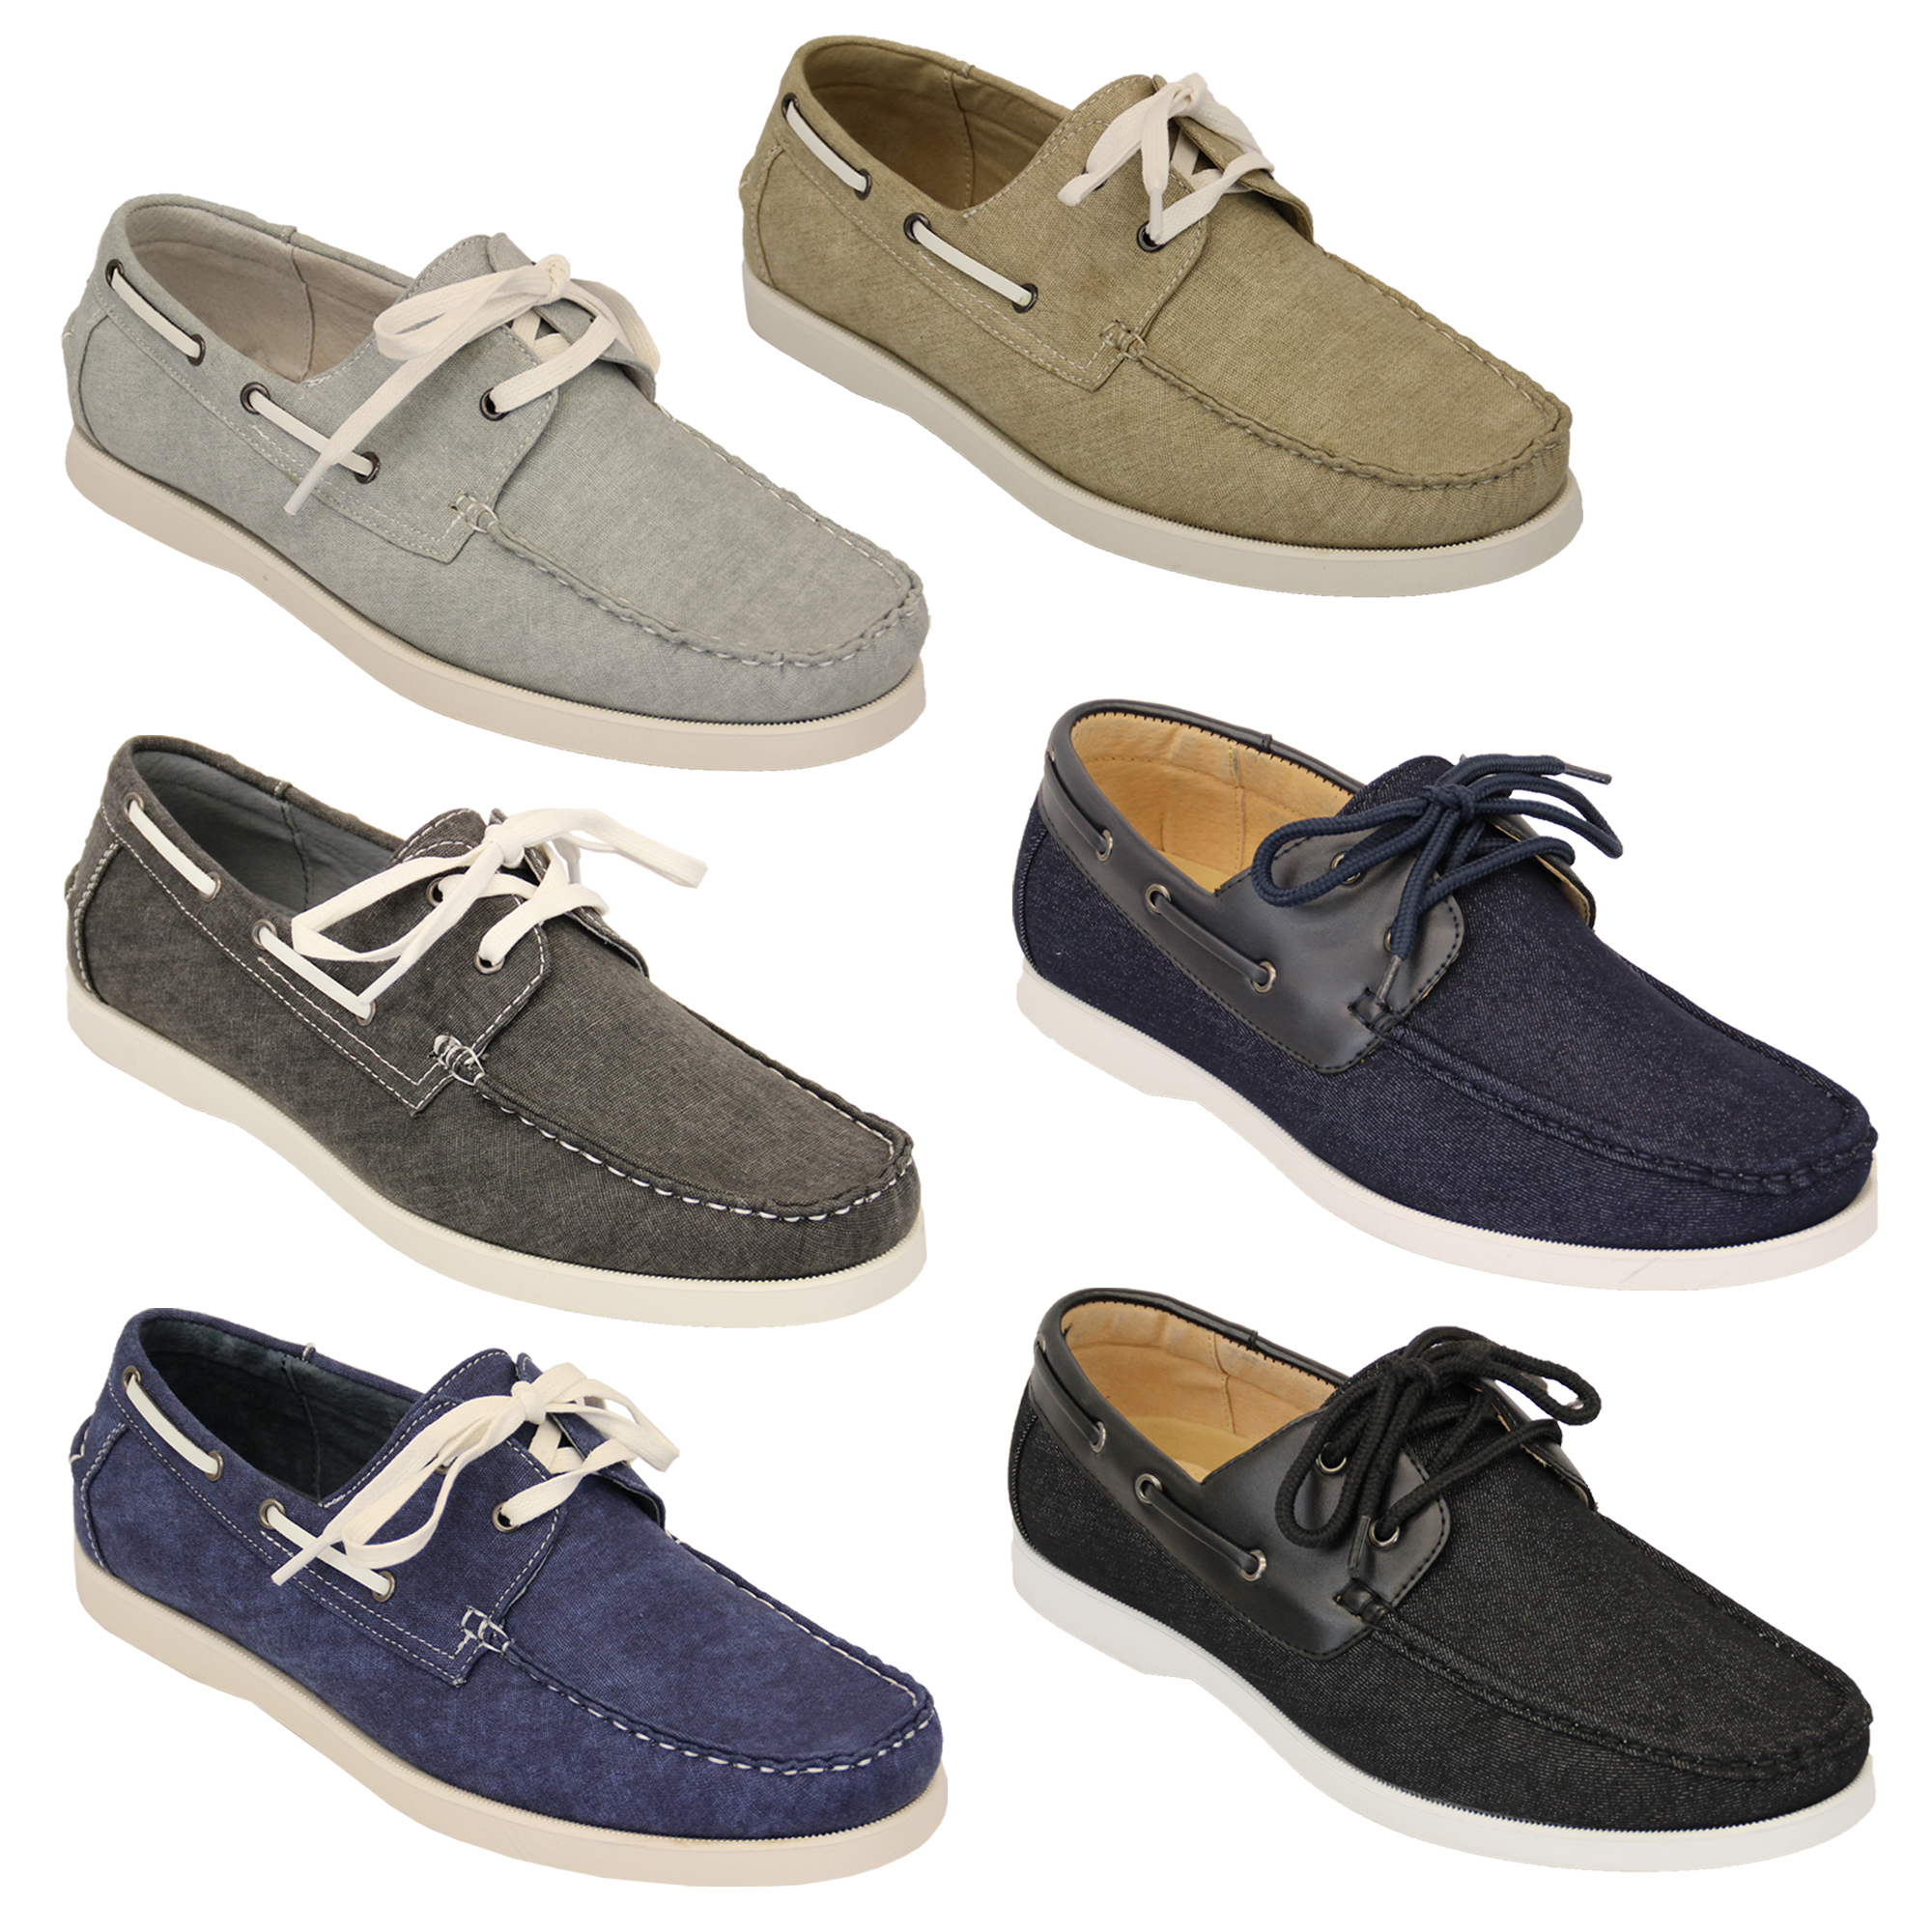 Mens Denim Leather Boat Shoes Driving Lace Up Deck Galax Smart ... 6628ac5ce